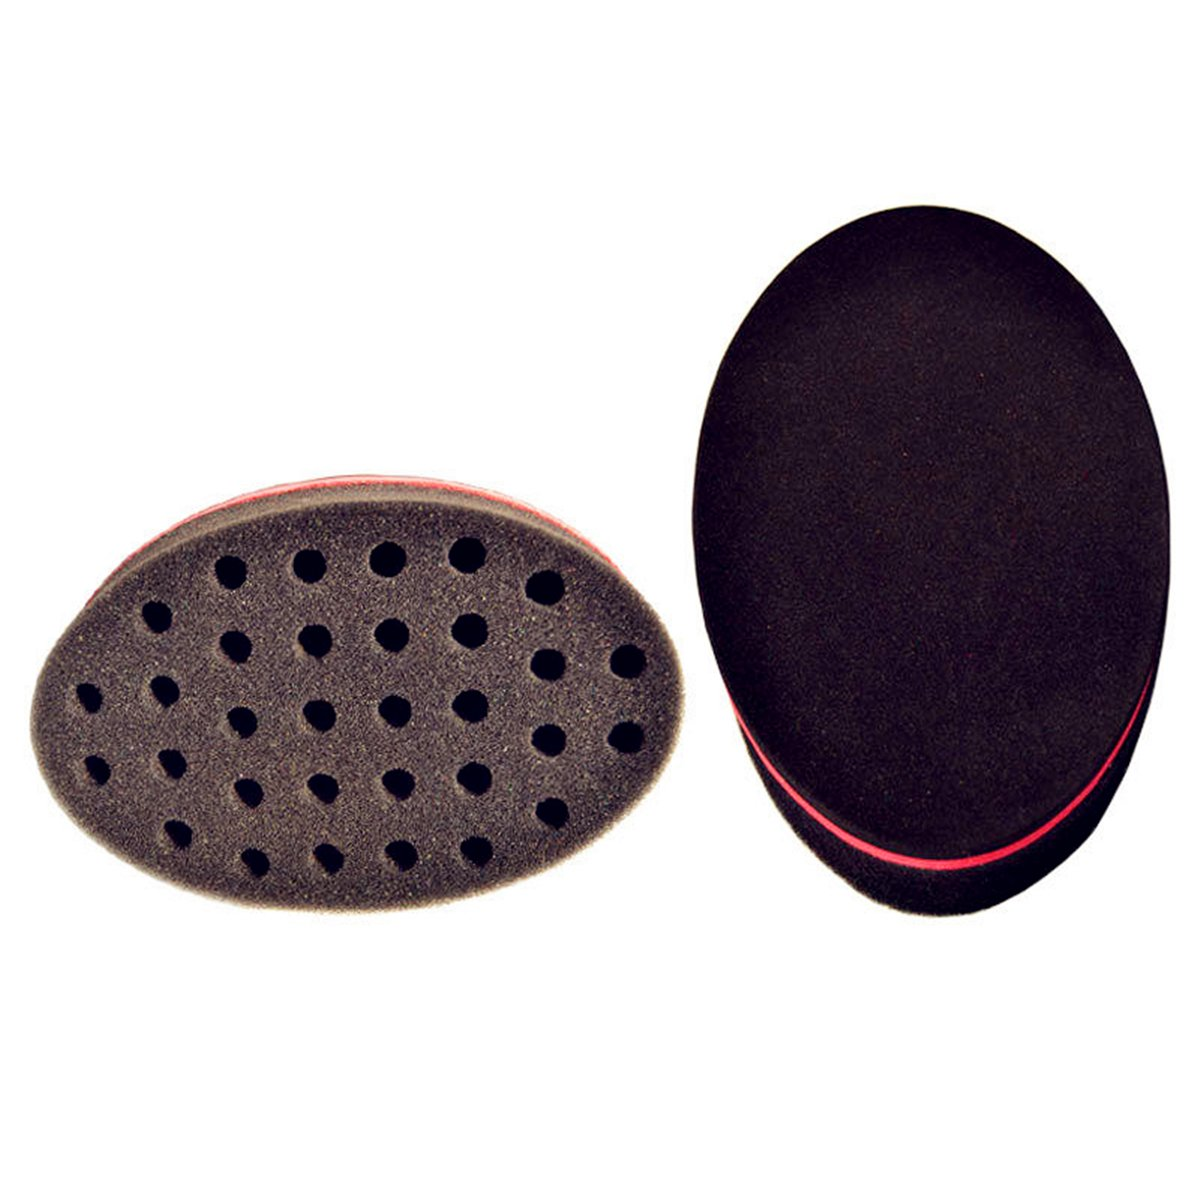 Careshine Barber Curl Twist Hair Sponge Brush Keeping Afro Curl(2Pcs)